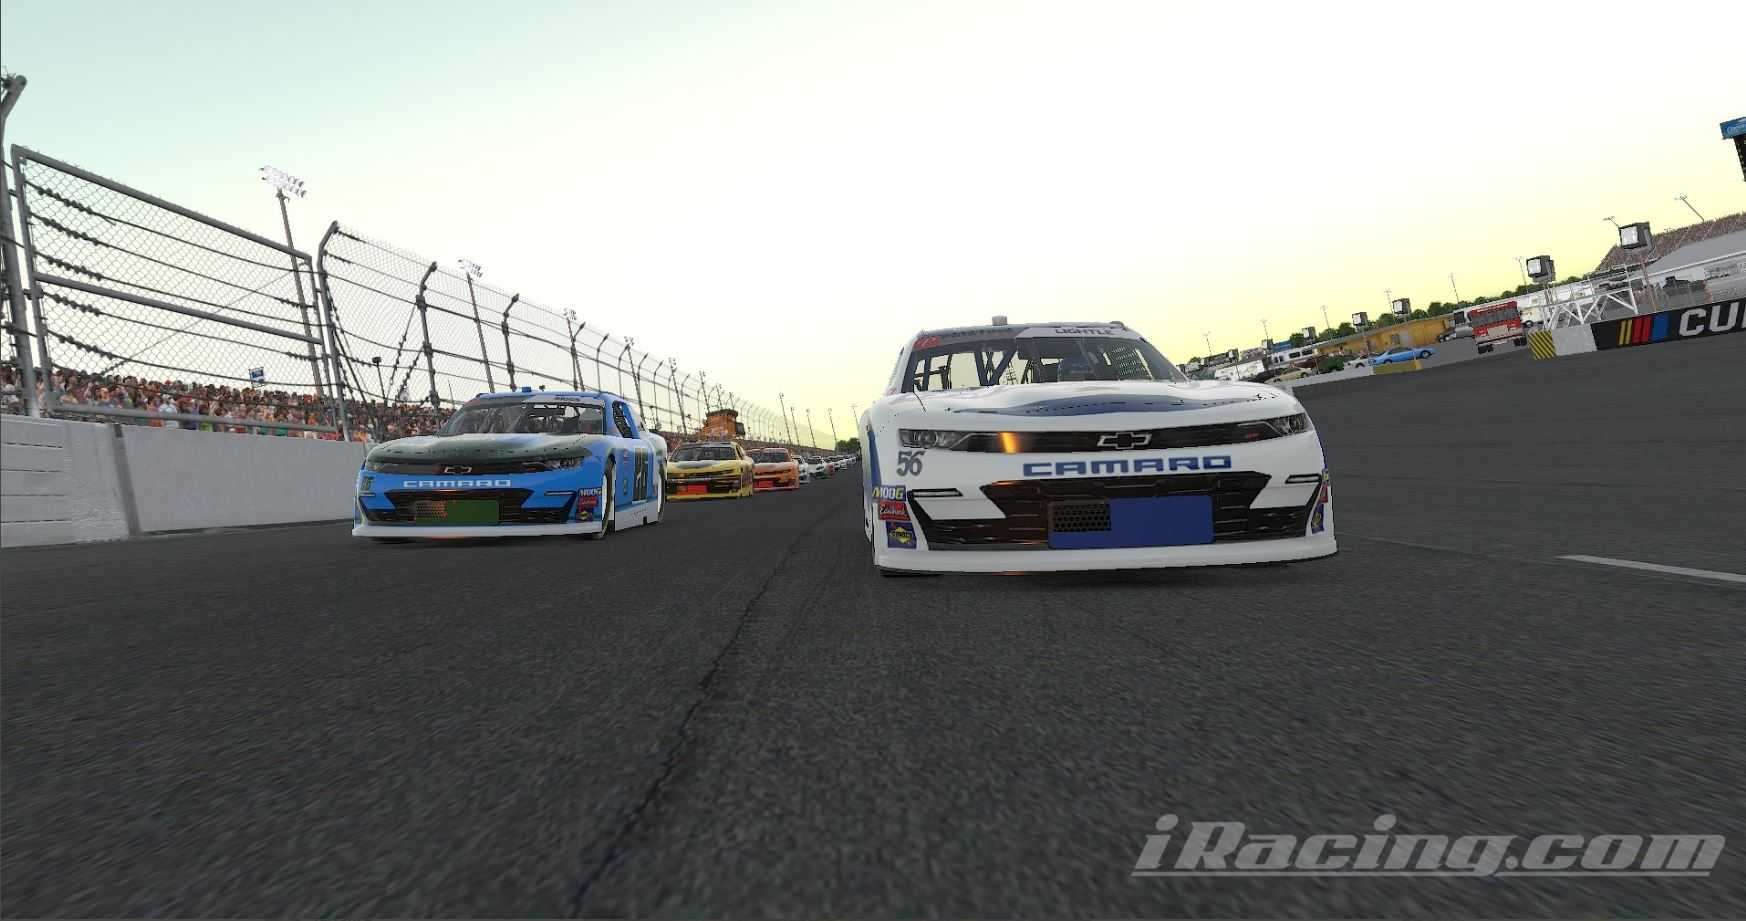 Lightle's Late Mistake Allows Adams to Capture Second Victory